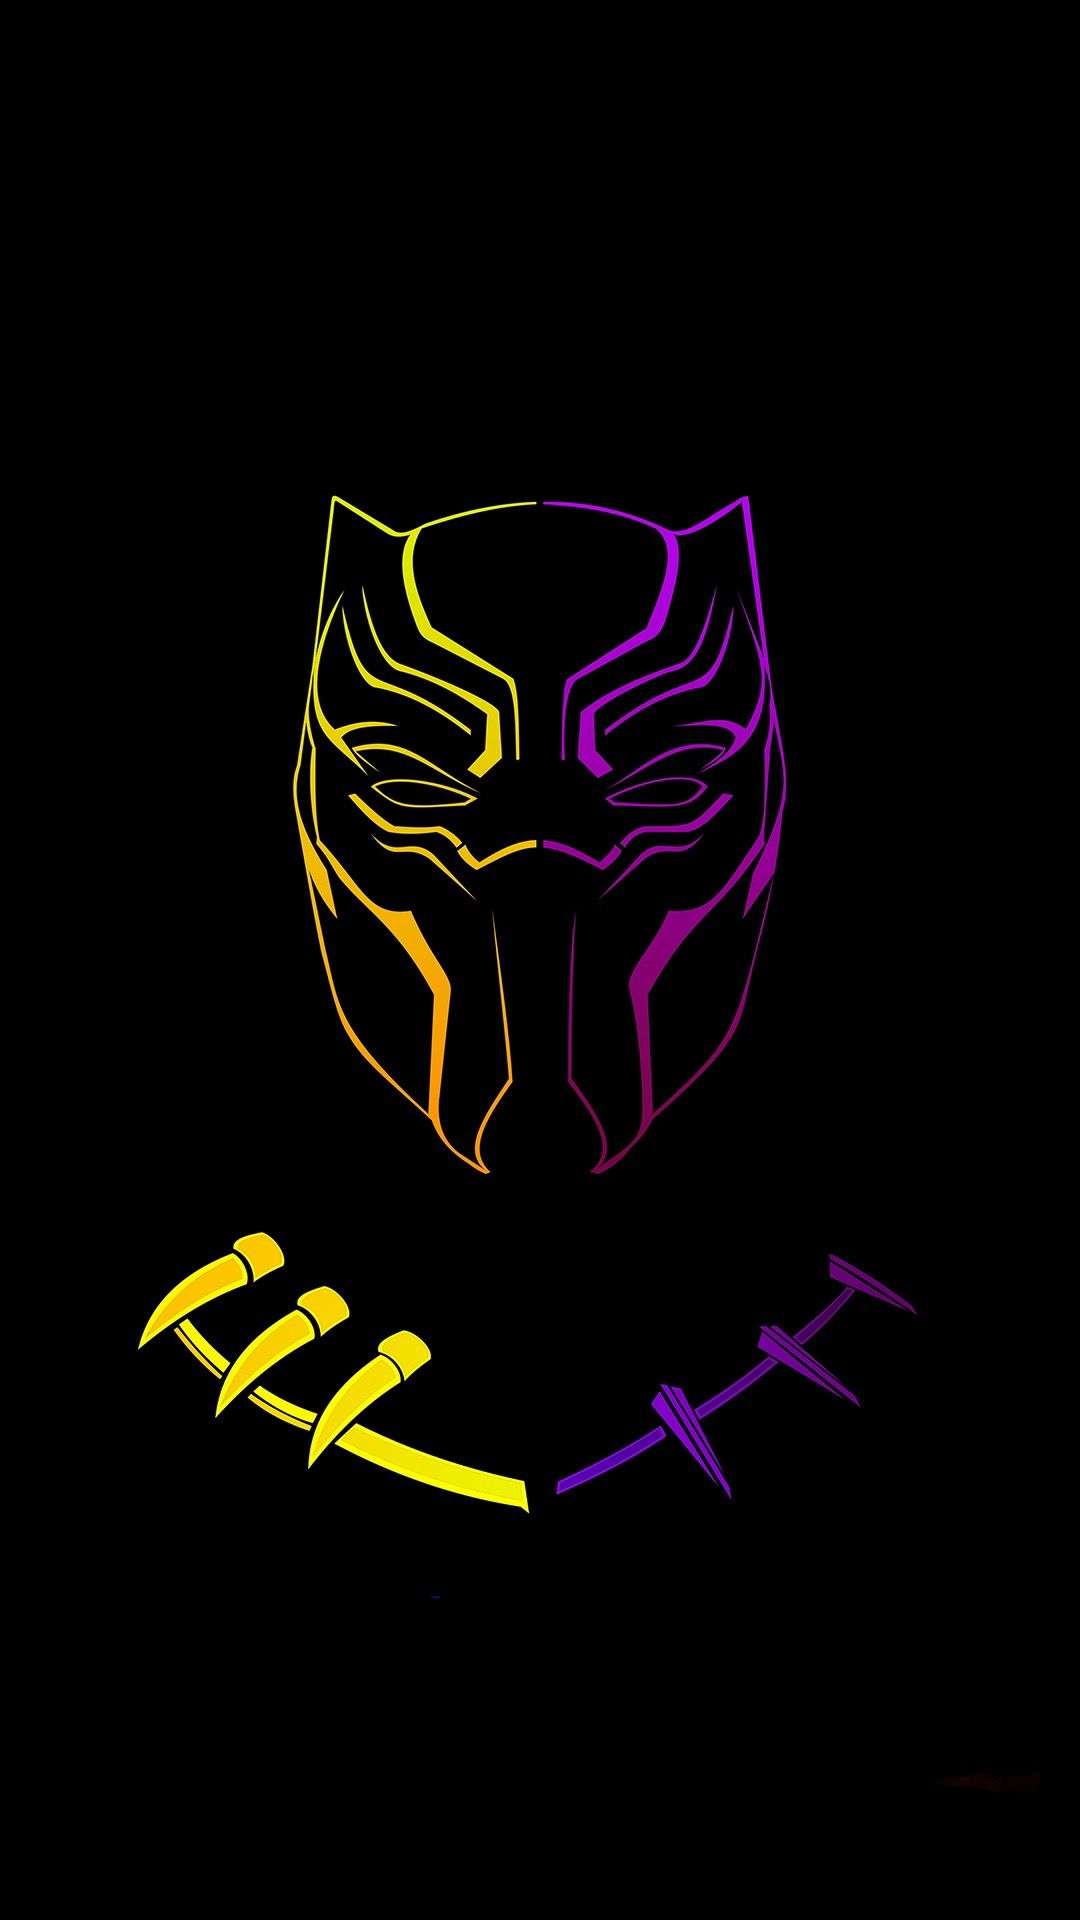 Pin By Flash Boy On Marvel Black Panther Marvel Black Panther Gaming Wallpapers